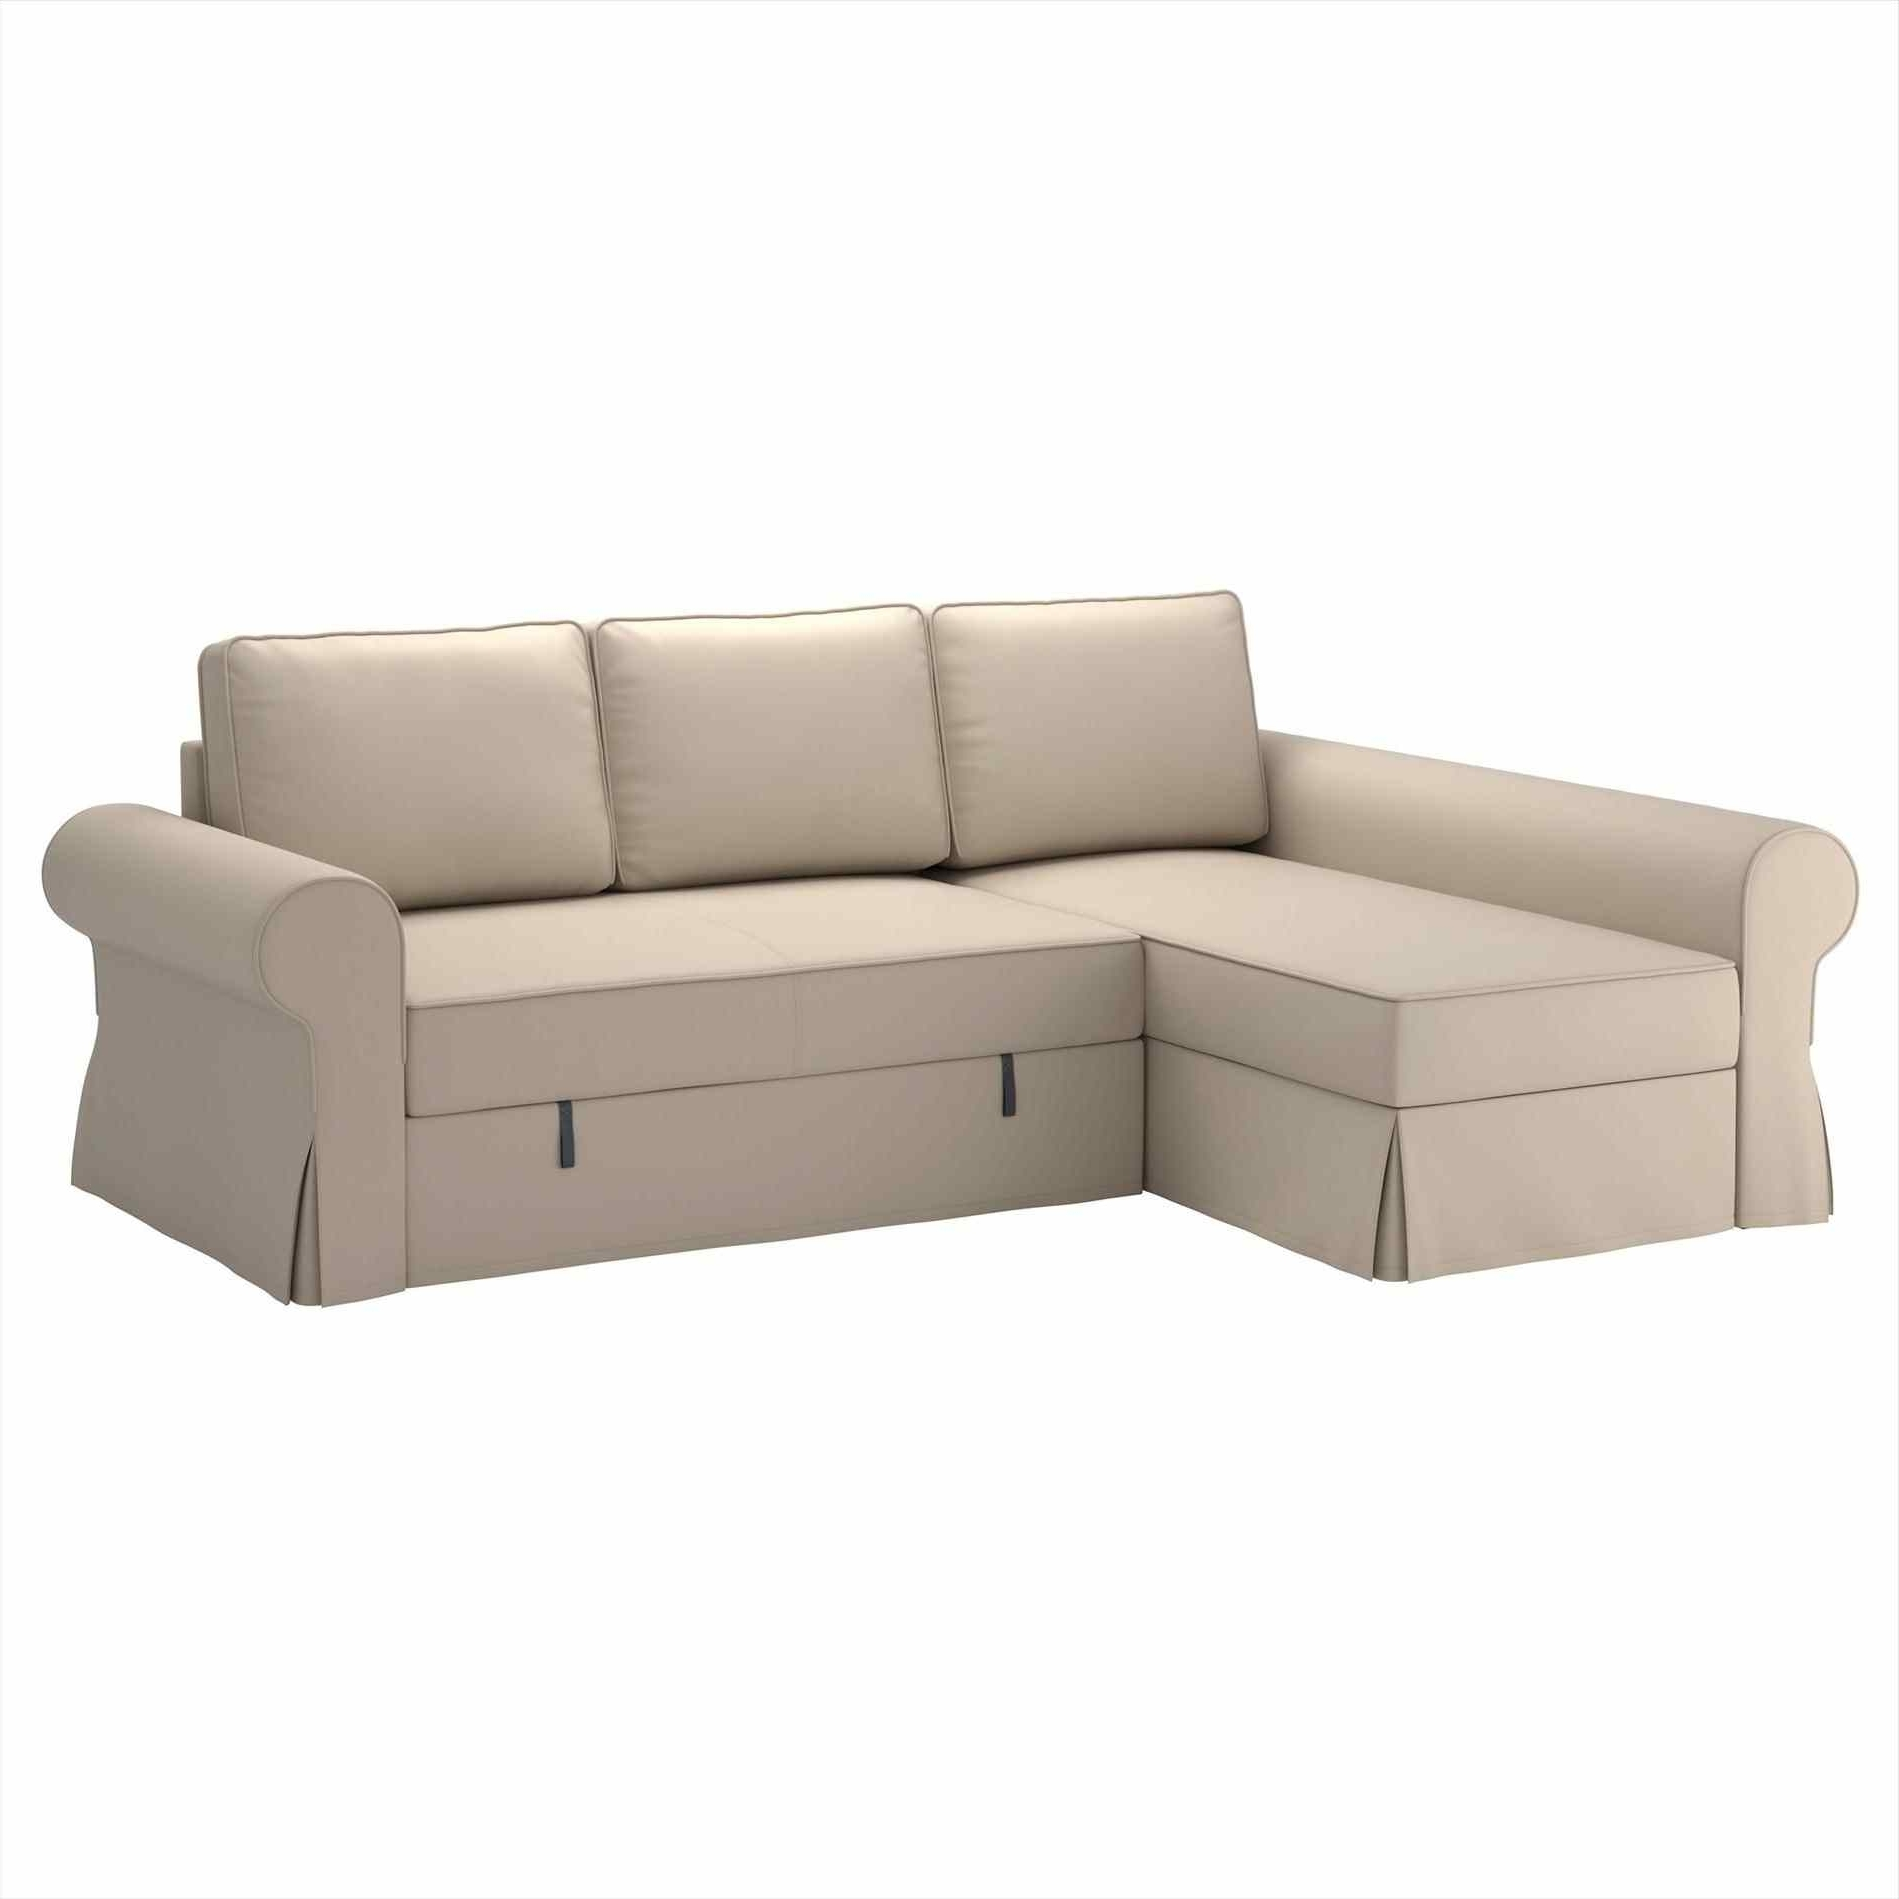 Trendy Sofa : Ikea Seat With Ramna Light Grey Friheten Storage Skiftebo In Ikea Corner Sofas With Storage (View 19 of 20)